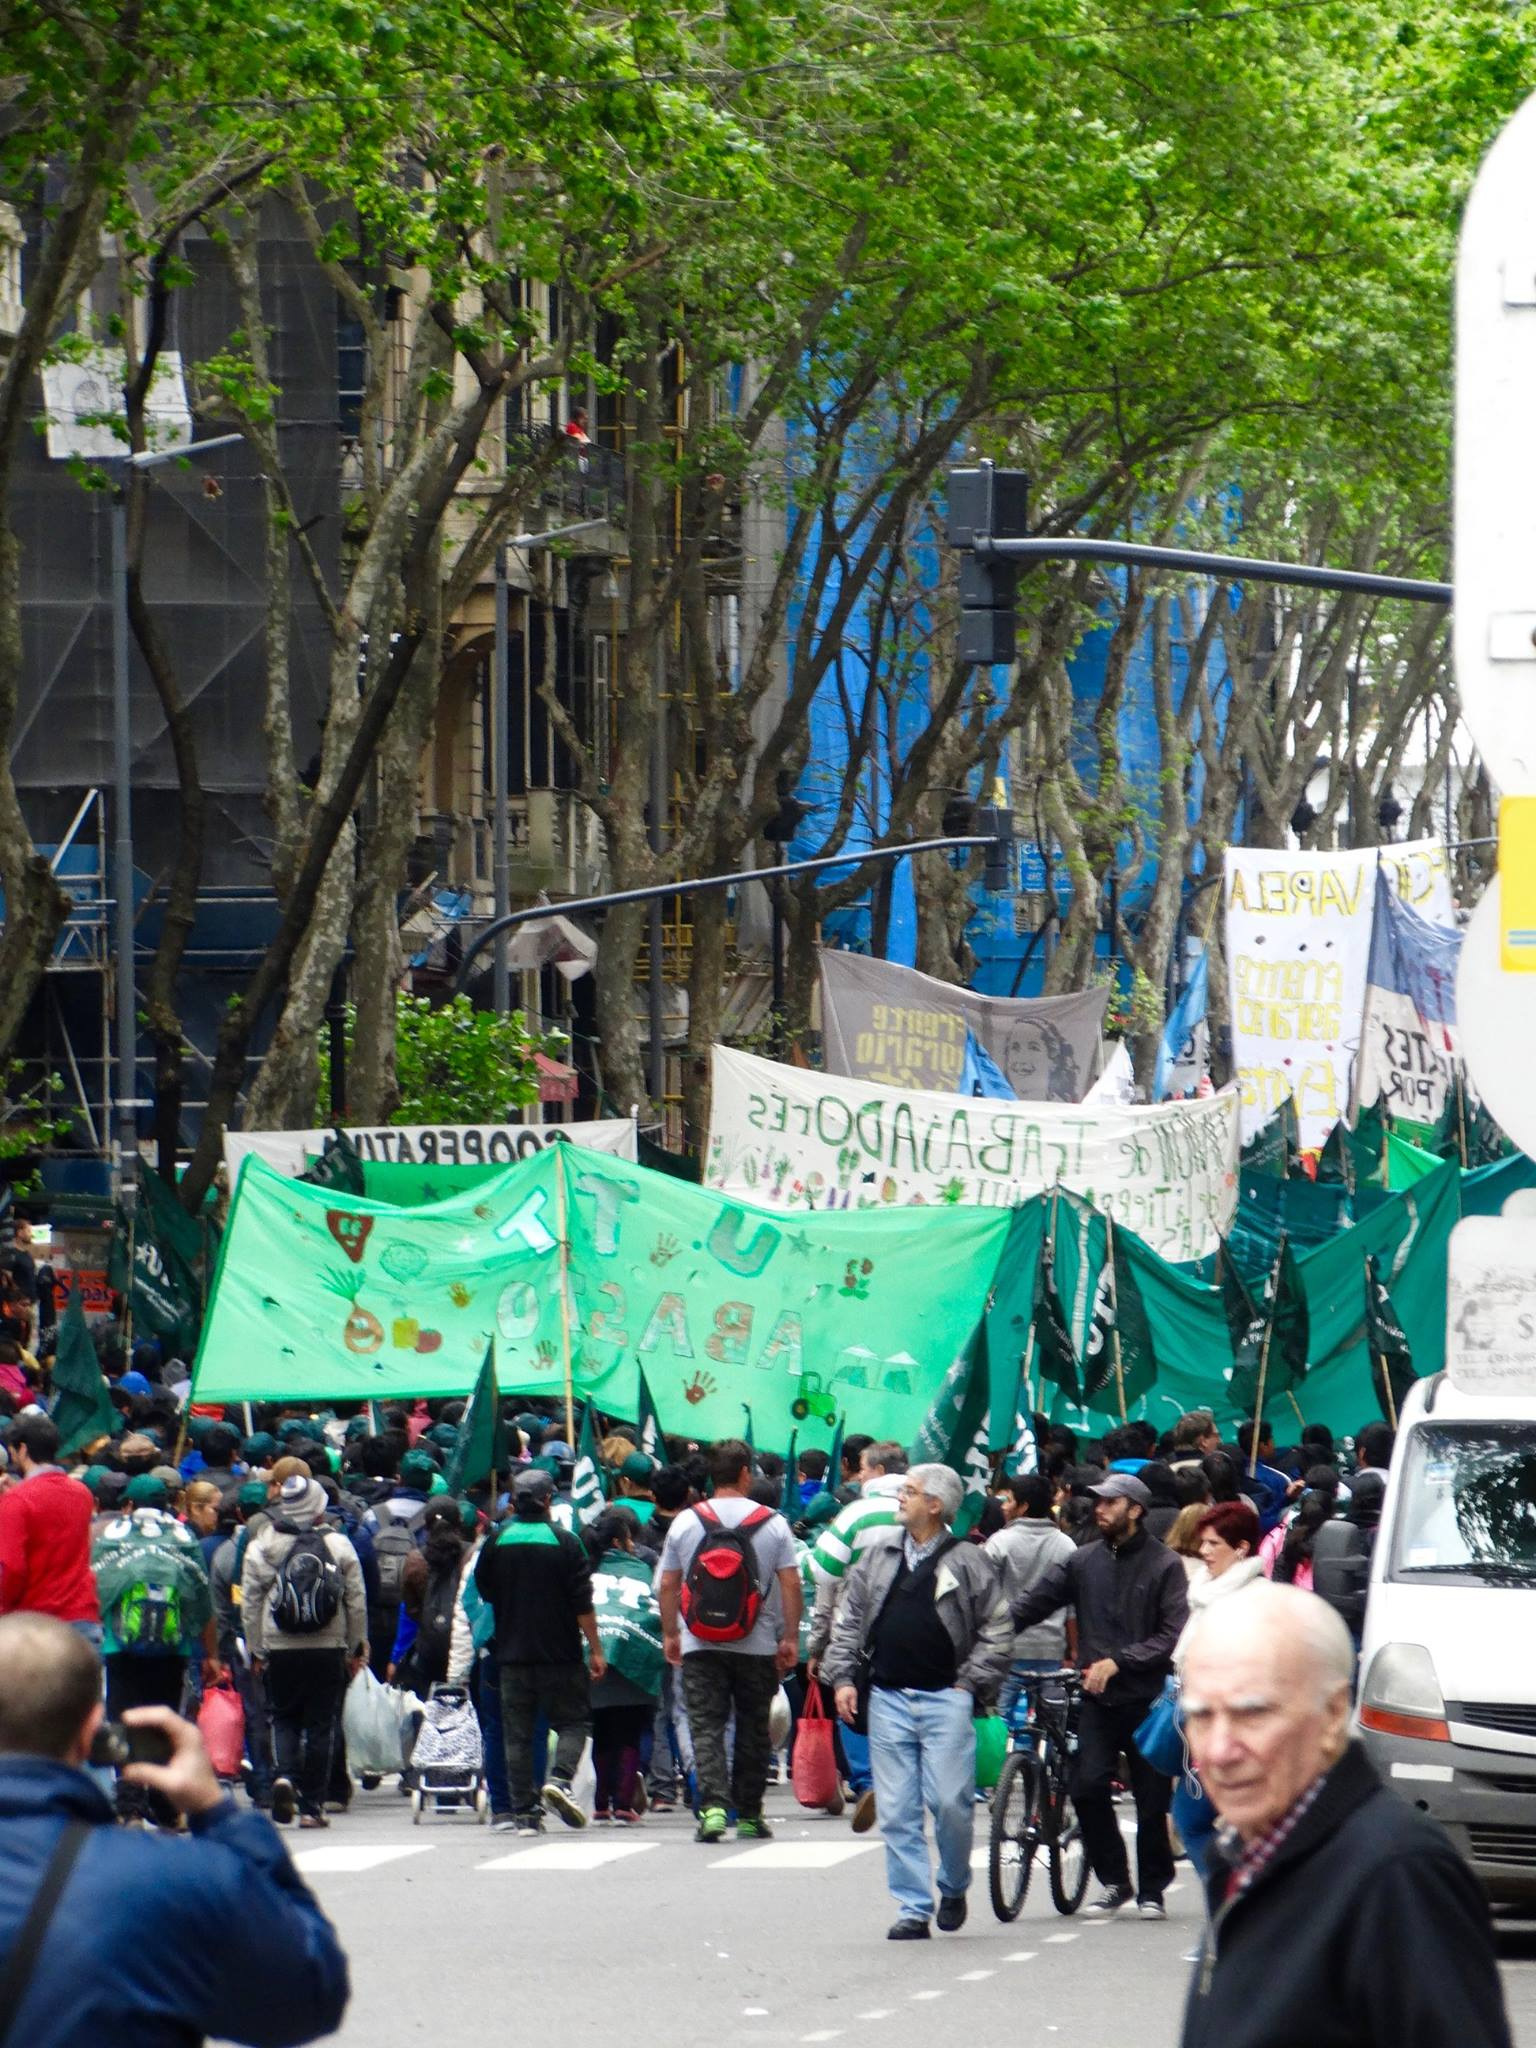 Demonstrations are a regular part of life in the city. This one was put on by the UTT (Workers of the Soil union), and from what I can translate by the signs, the protest seems to be about drug rehabilitation access.